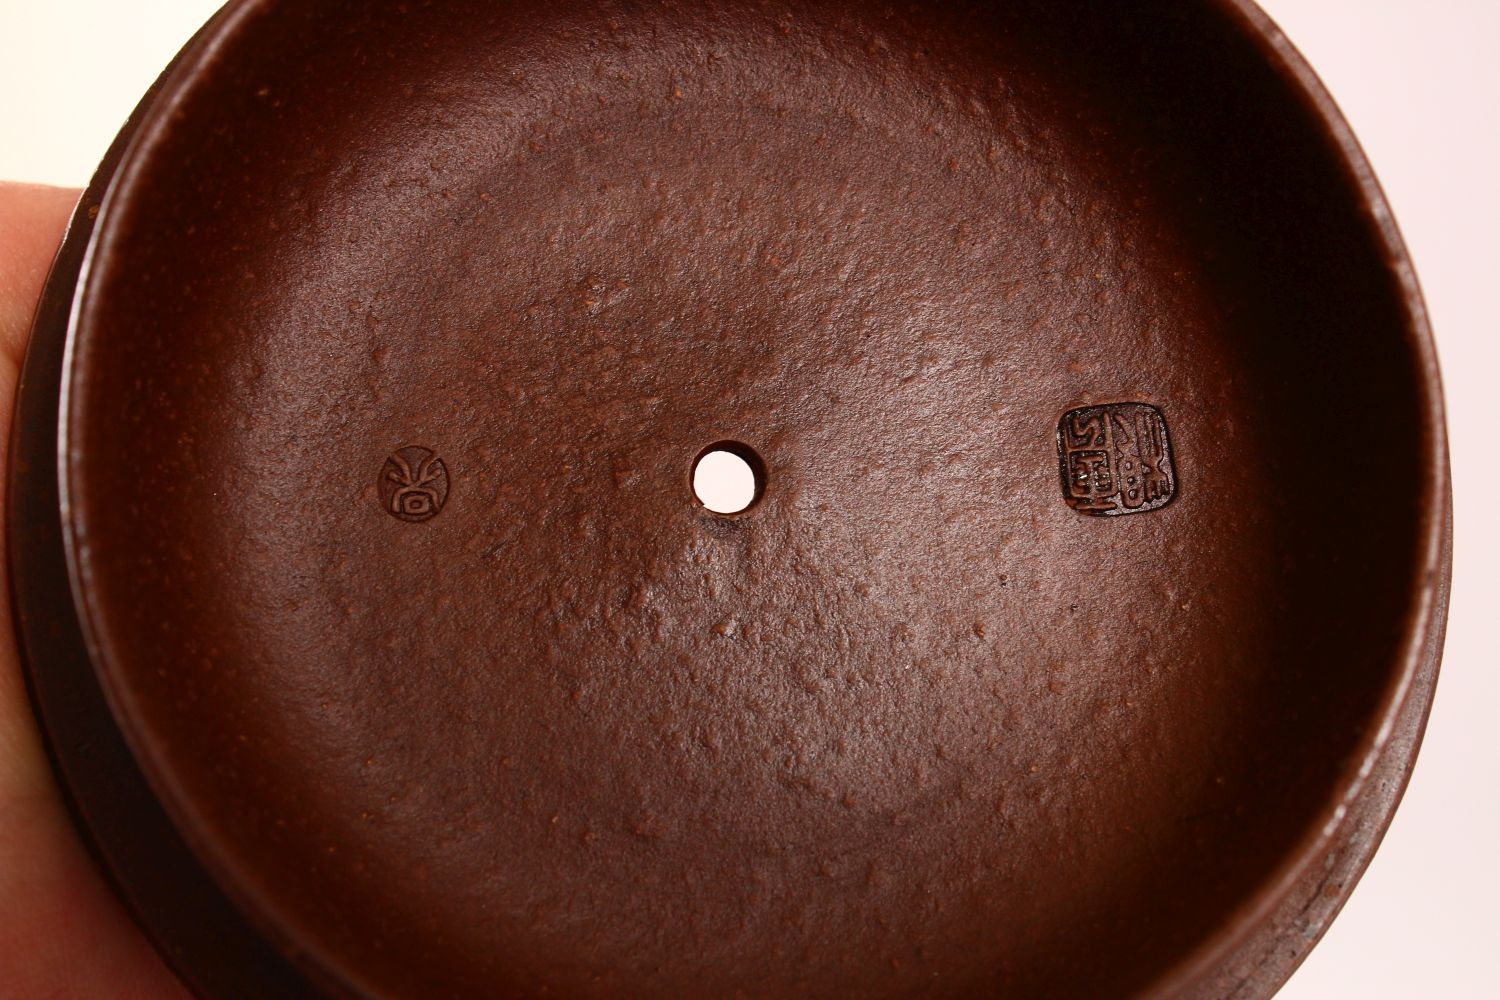 A CHINESE YIXING CLAY TEAPOT, with moulded beast like figures, the underside of the pot and lid with - Image 6 of 8